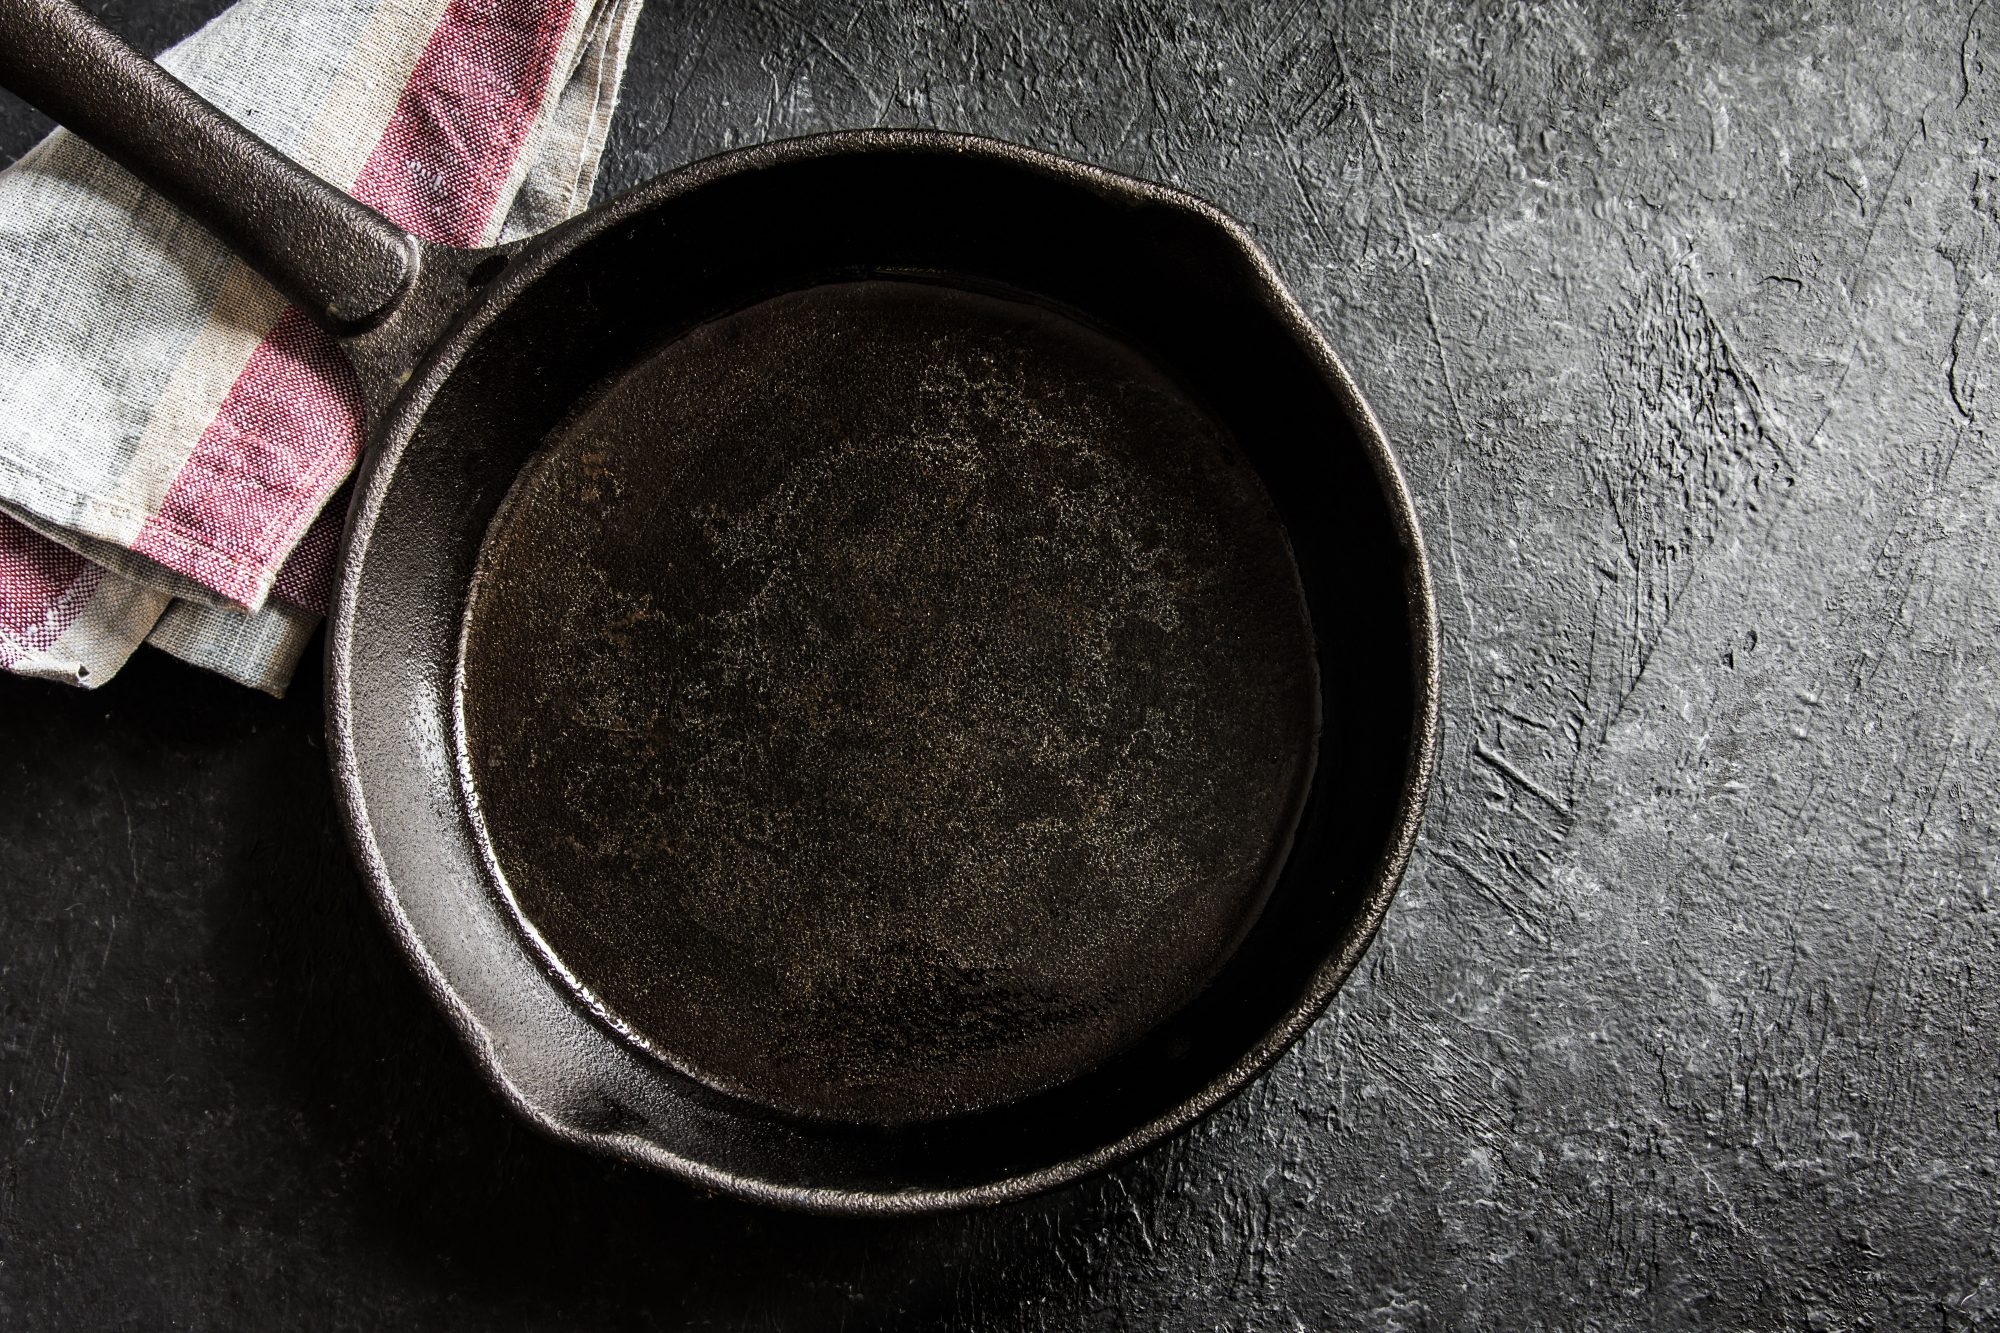 Cast-Iron Skillet on Wood Background